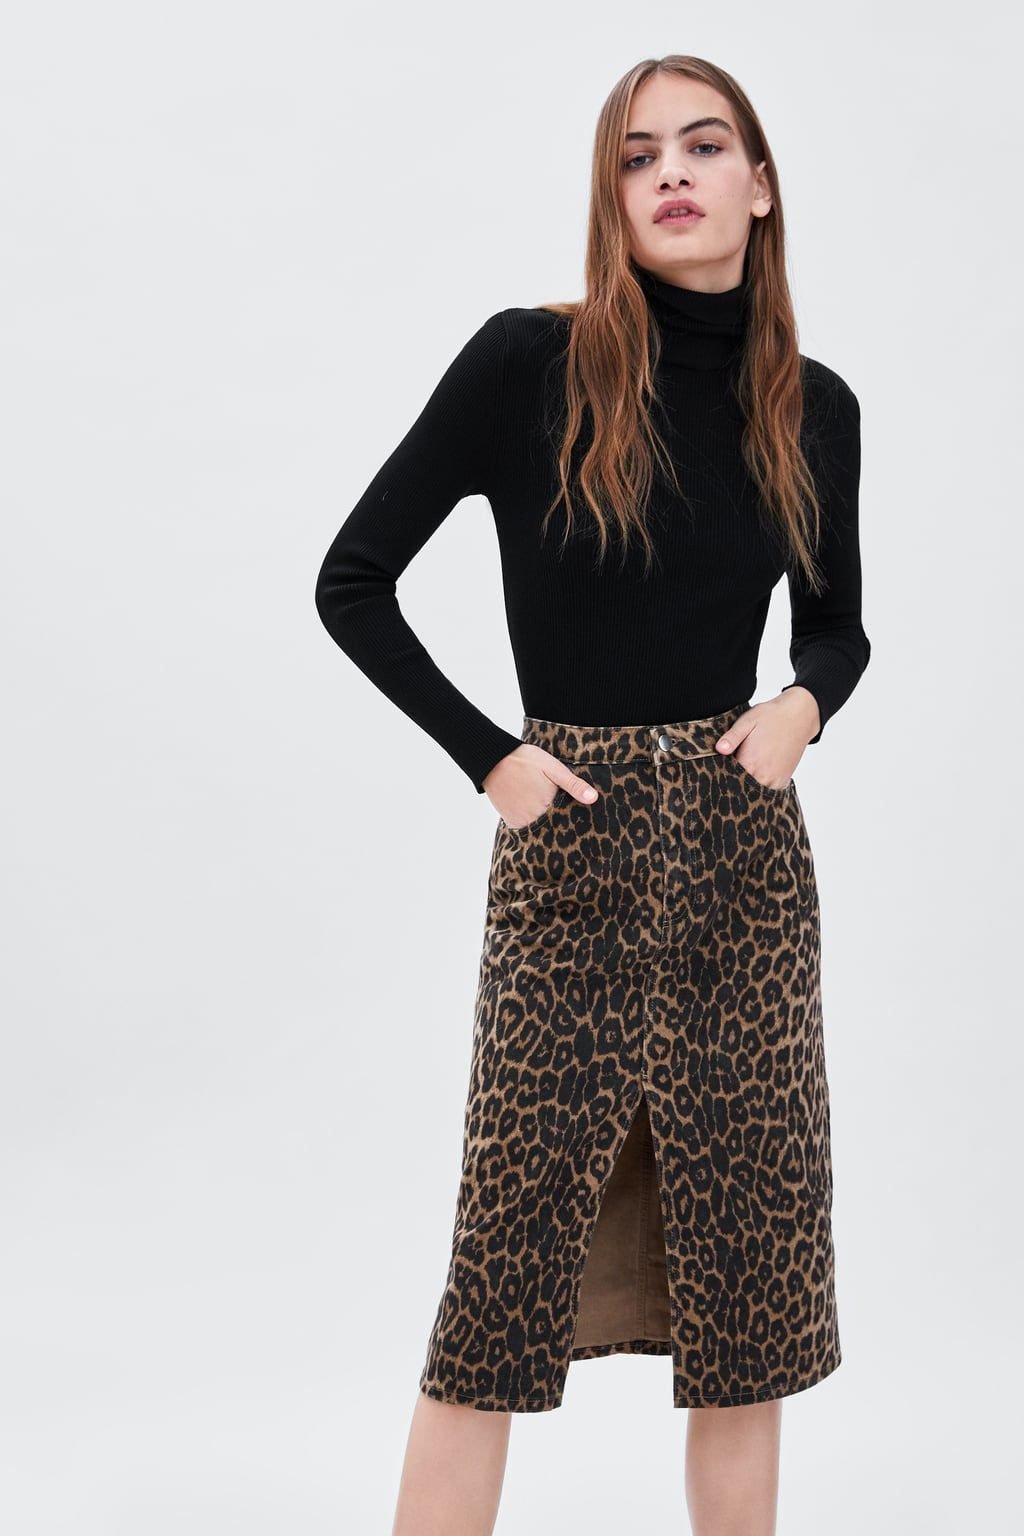 26227cb3 Image 2 of LEOPARD PRINT SKIRT from Zara | Sewing in 2019 | Leopard ...